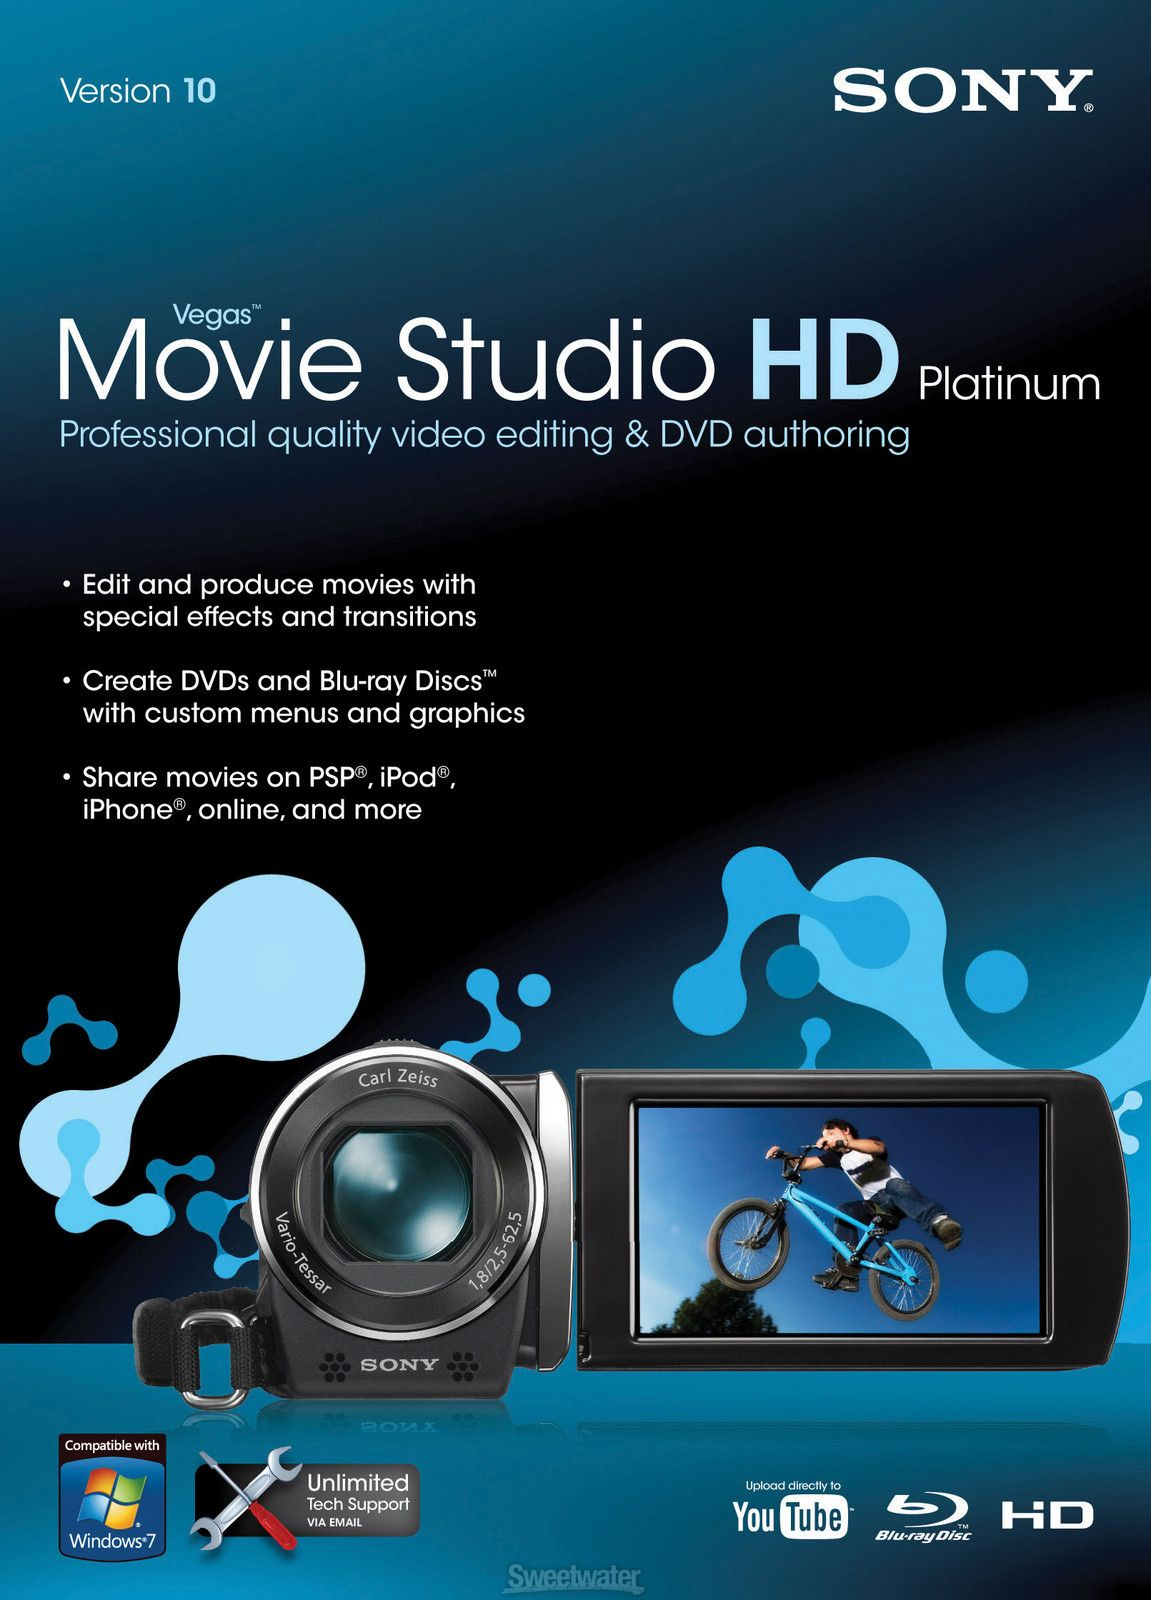 sony vegas movie studio hd platinum 11 serial number generator